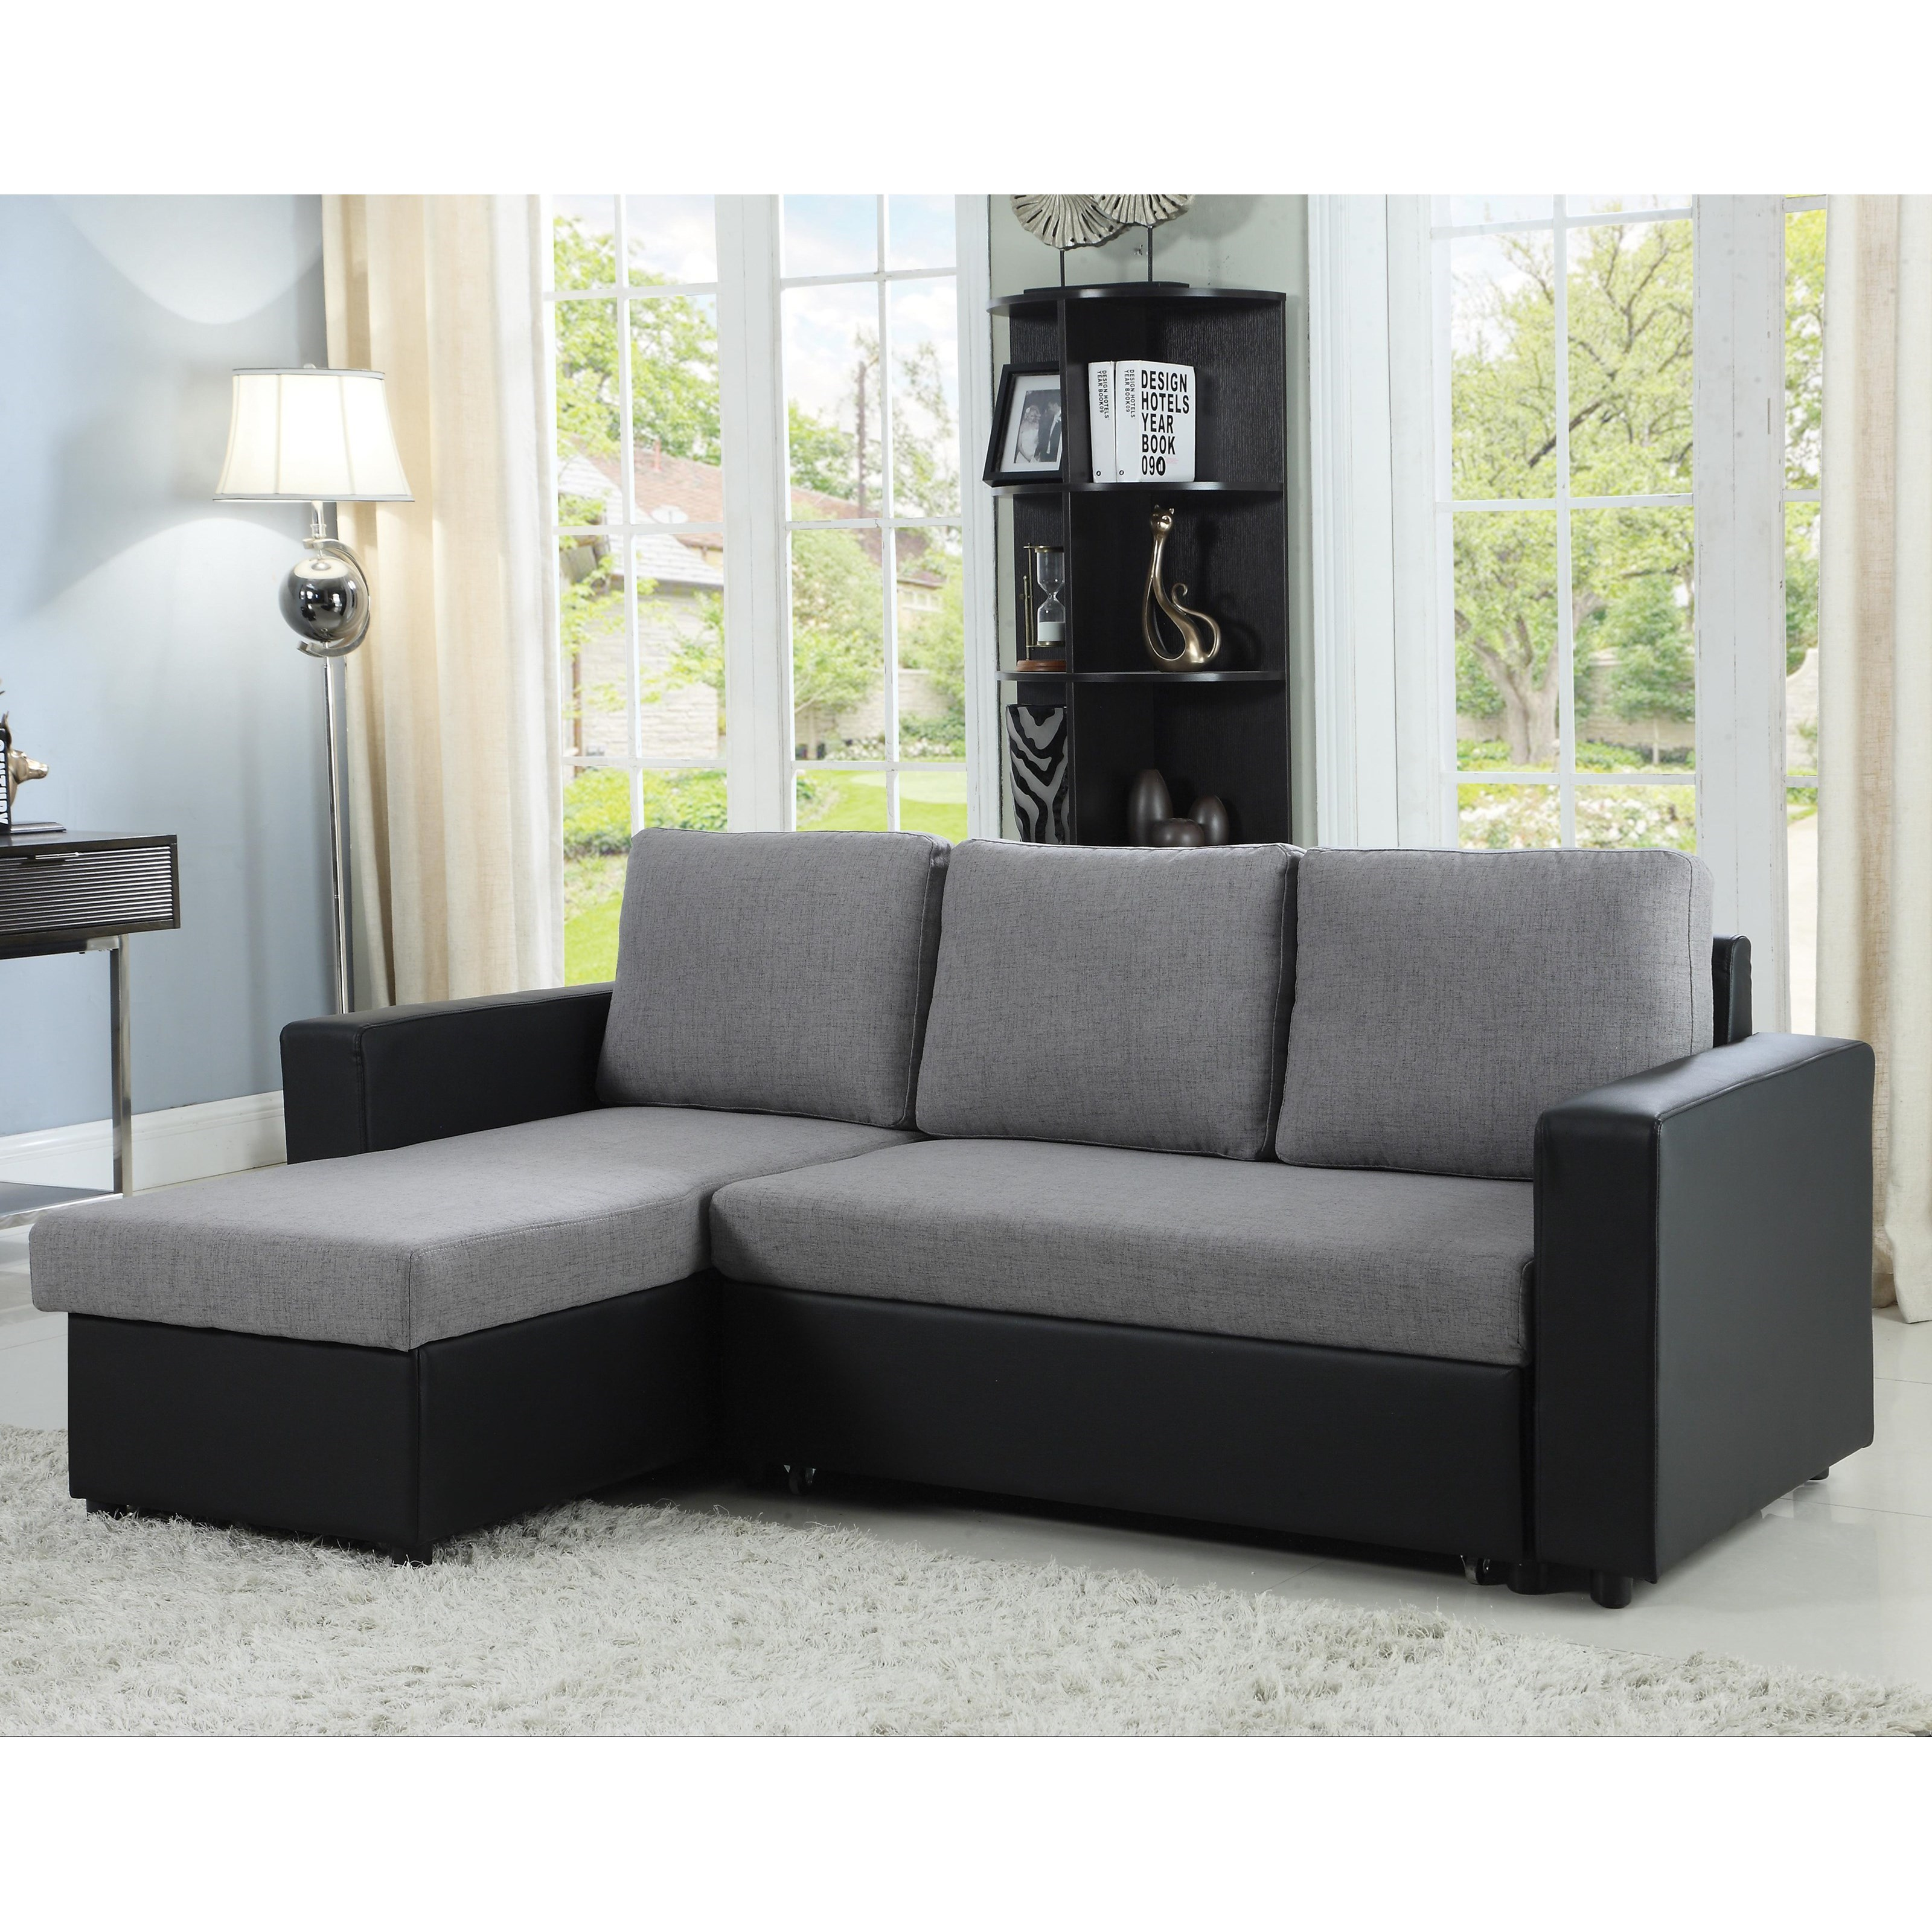 coaster baylor 503929 sectional sofa with chaise and sleeper dunk bright furniture. Black Bedroom Furniture Sets. Home Design Ideas